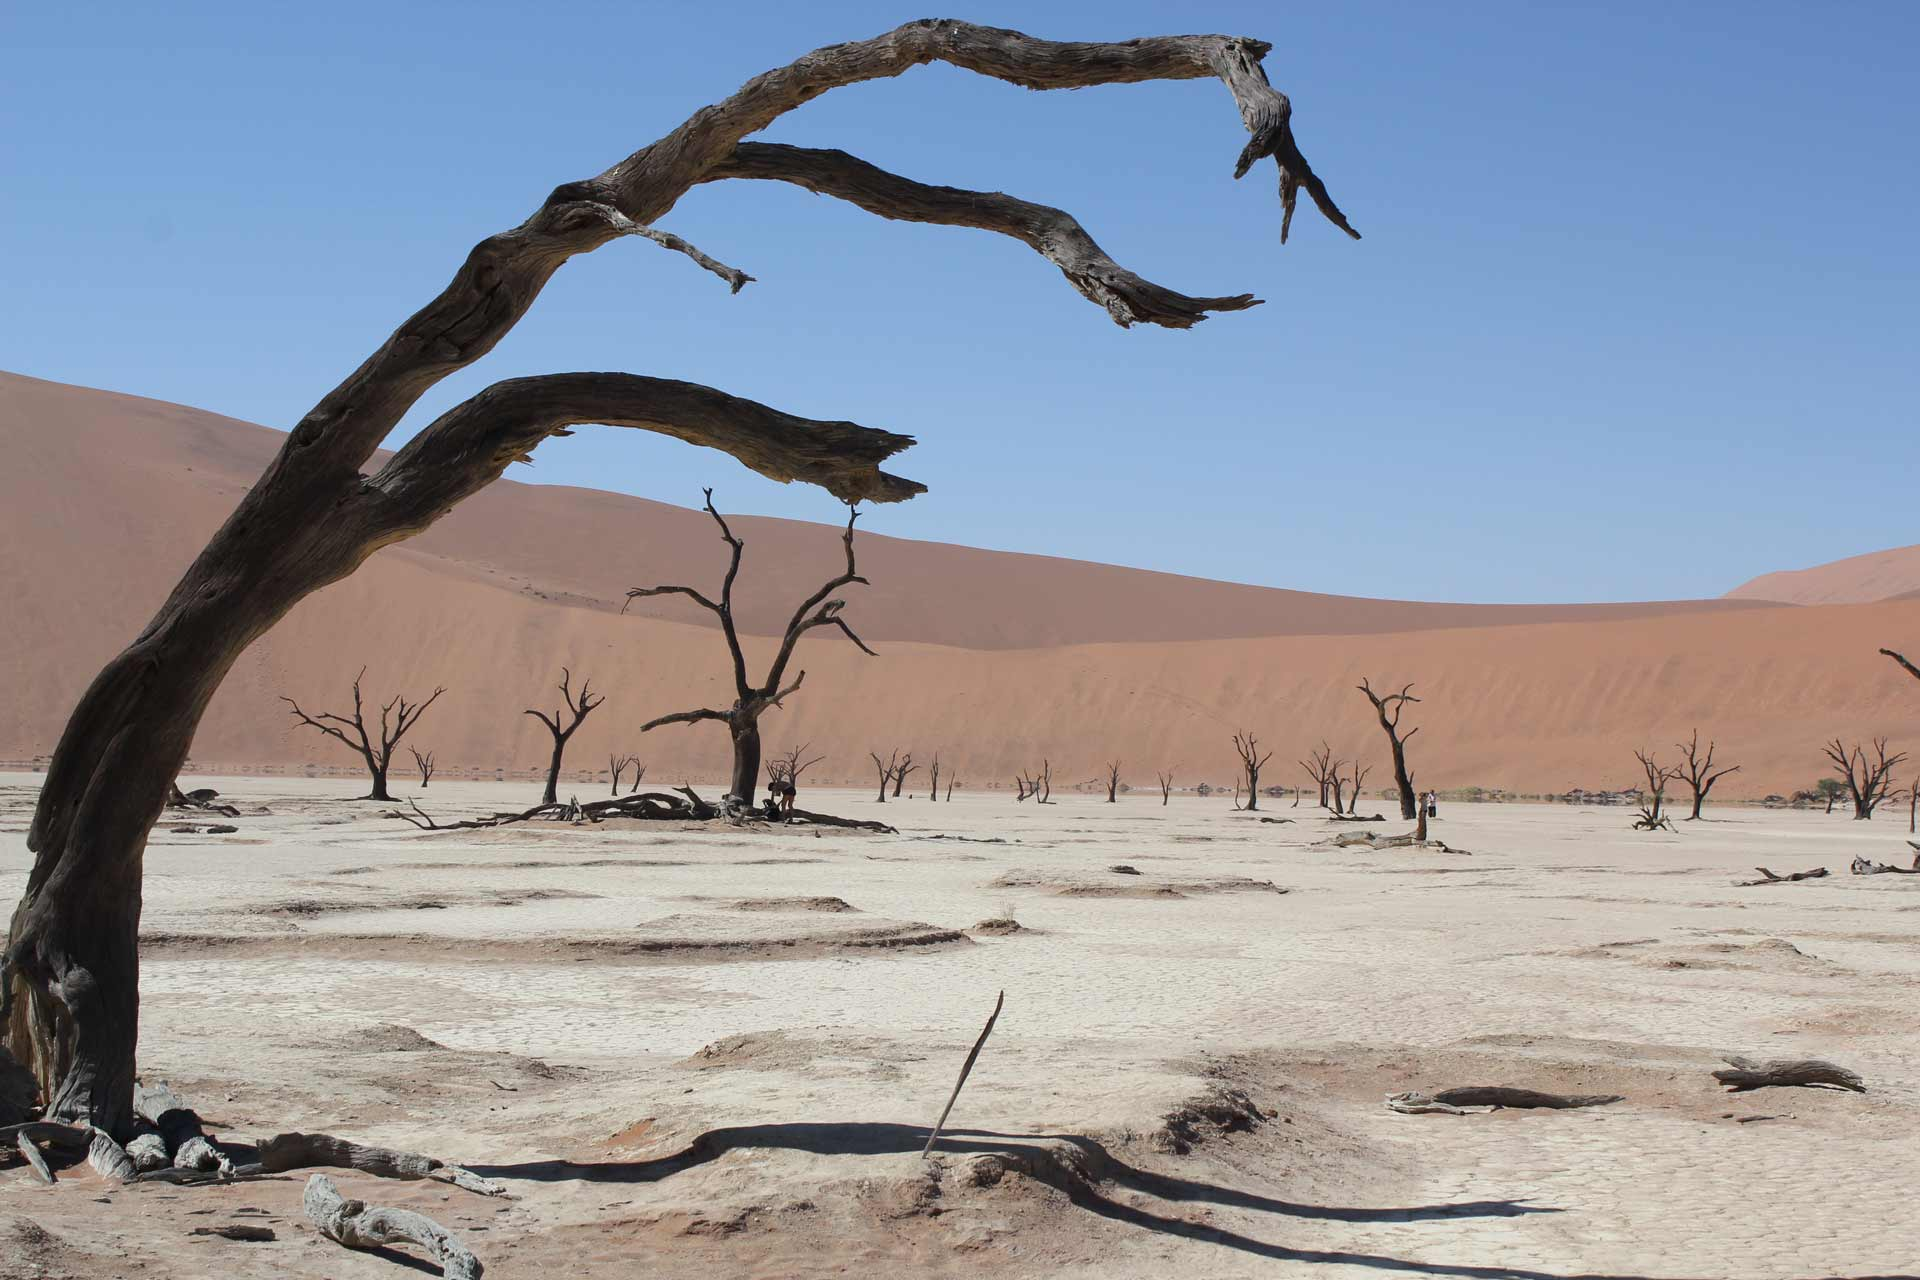 Dead acacia tree in Sossusvlei Pan in the Namib-Naukluft National Park